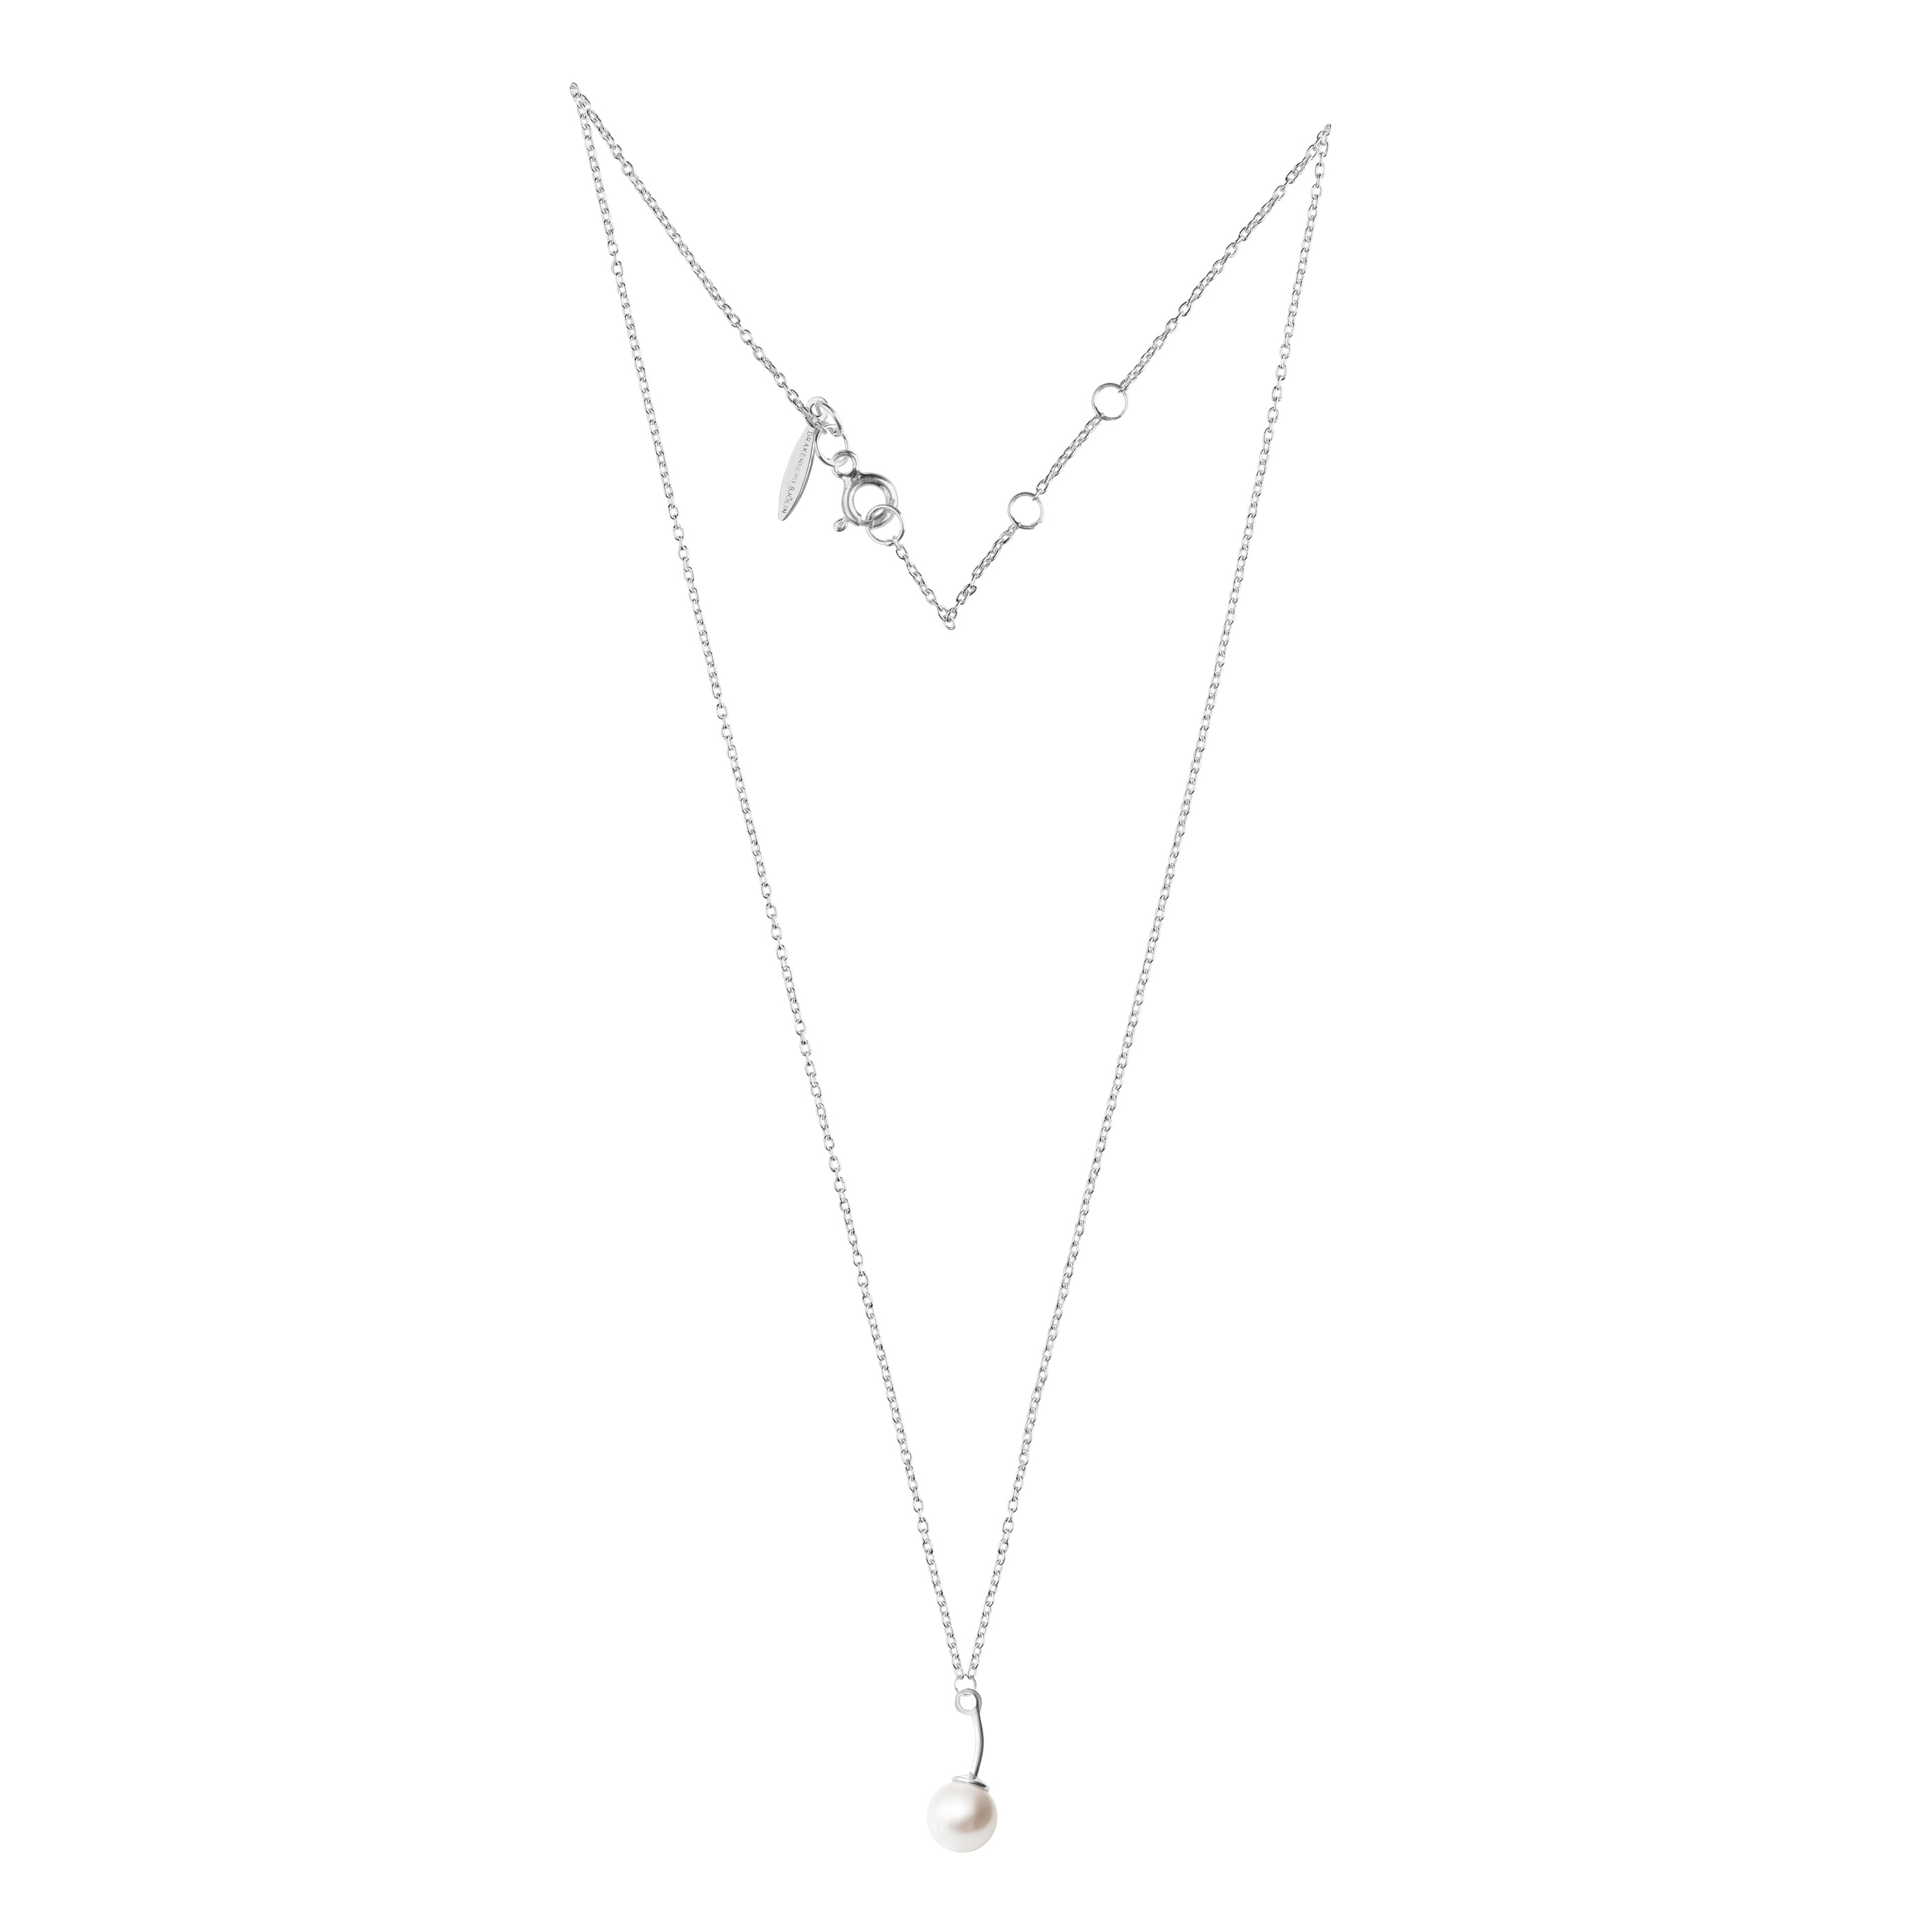 Le pearl single necklace